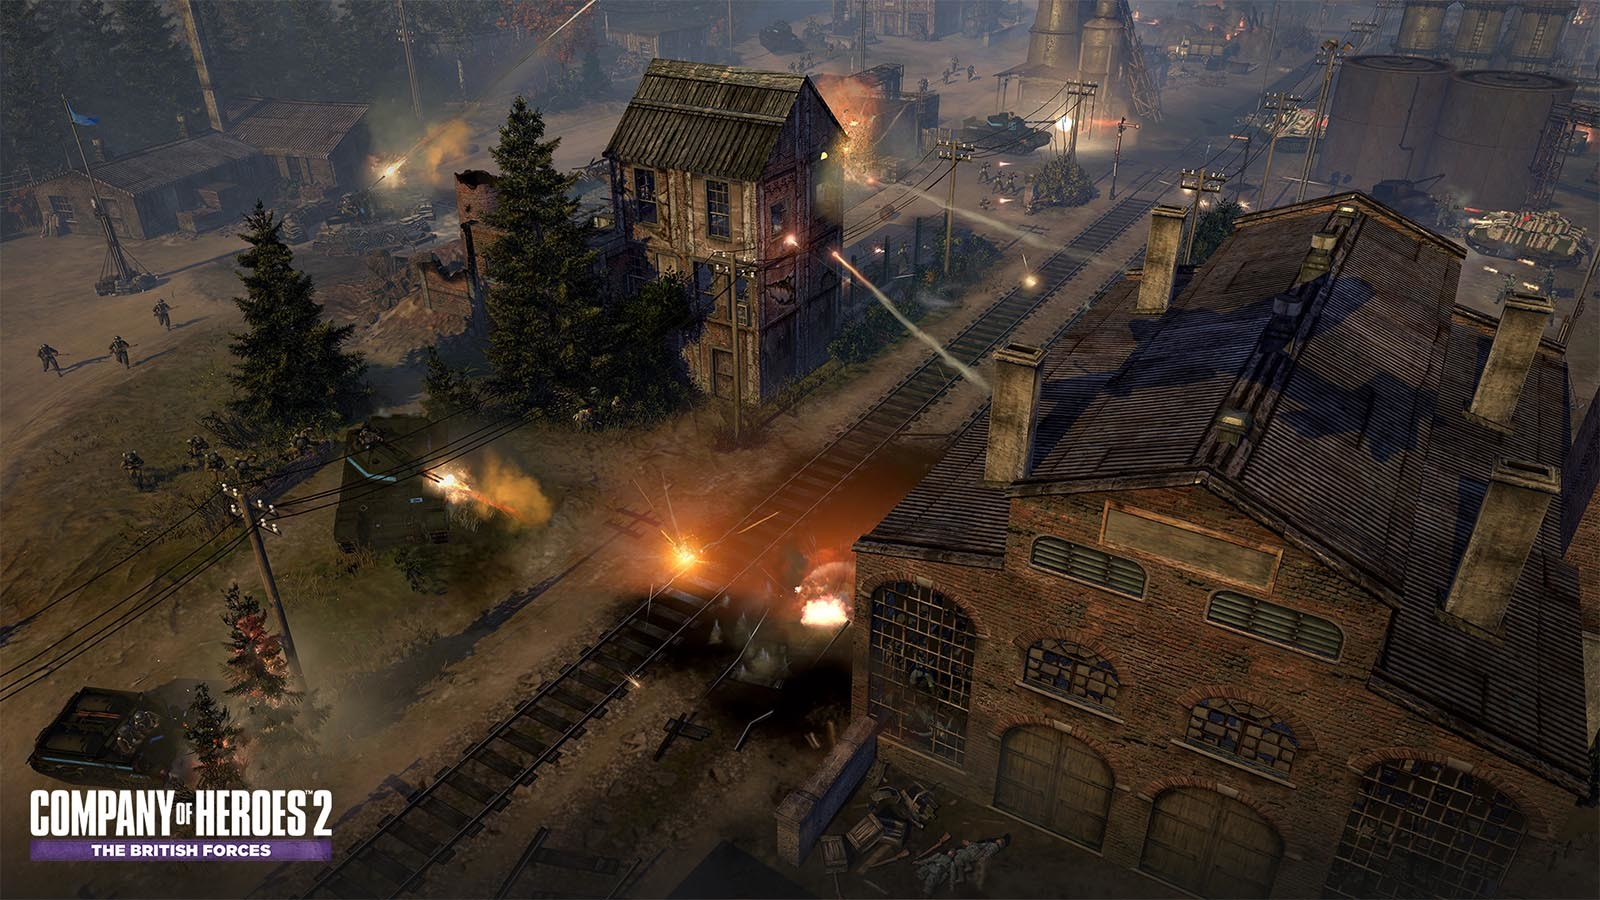 Company Of Heroes 2 The British Forces Steam Key For Pc Buy Now